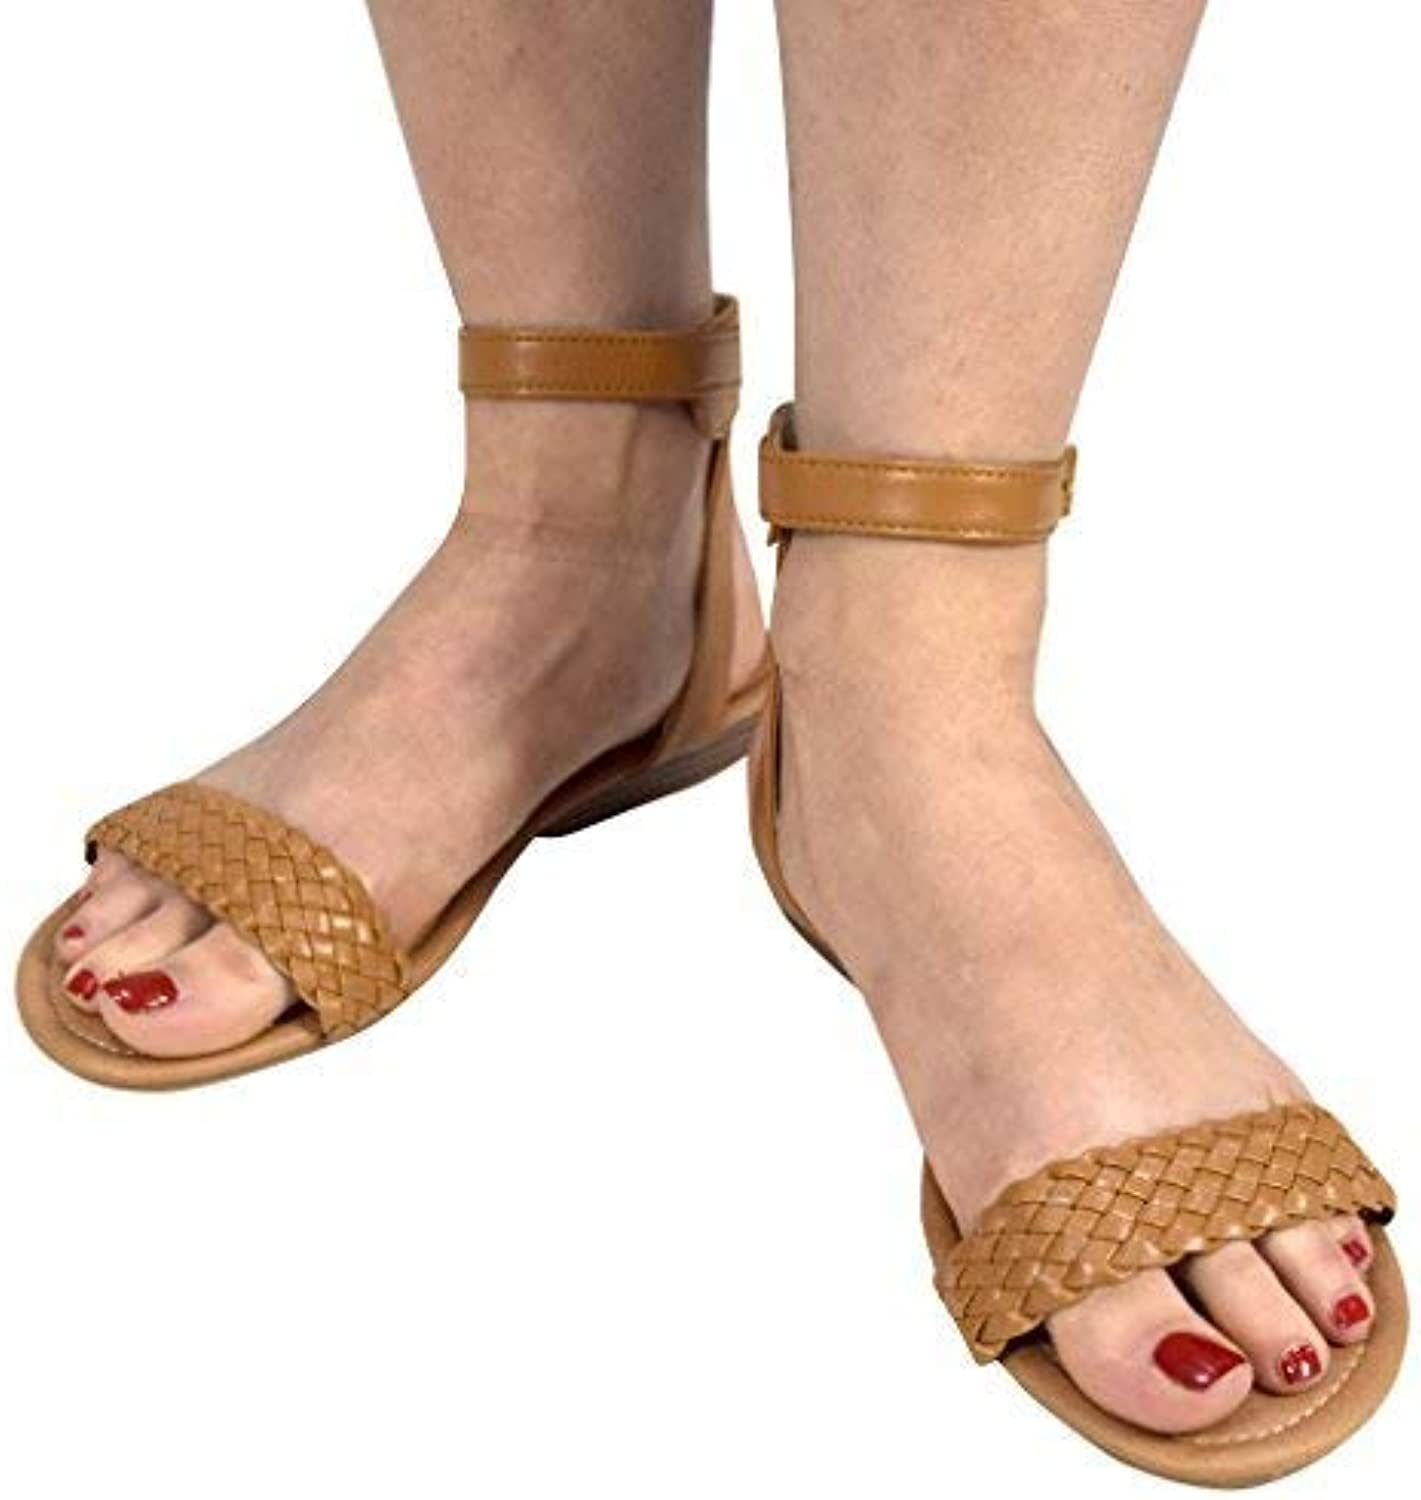 Peach Couture Womens Woven Strap Summer Wedge Heel Sandal with Adjustable Ankle Strap